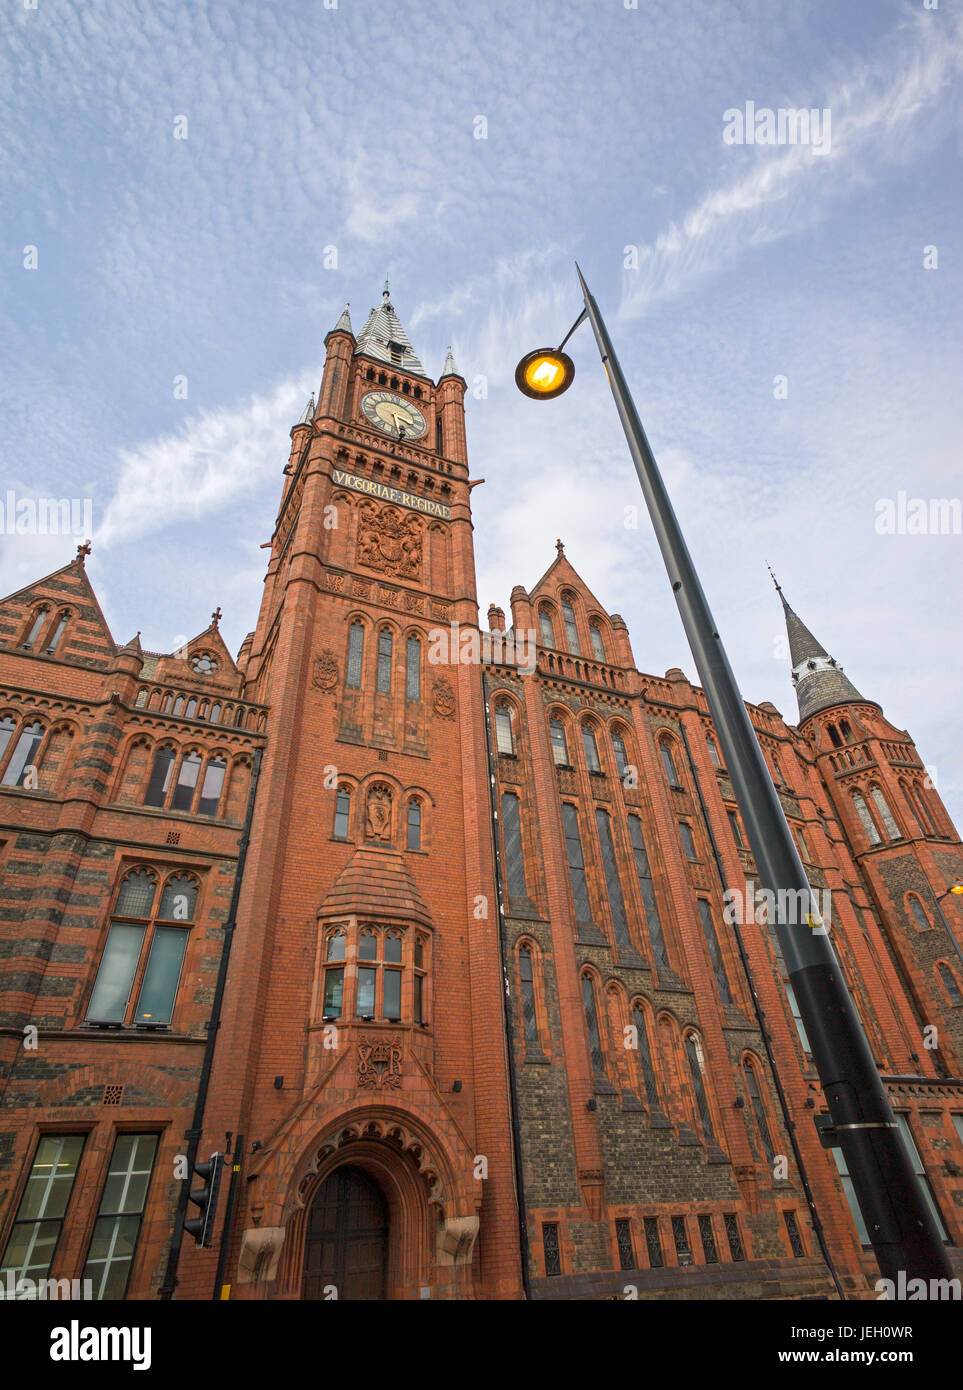 Victoria Building, University of Liverpool, Brownlow Hill, Liverpool, UK - Stock Image